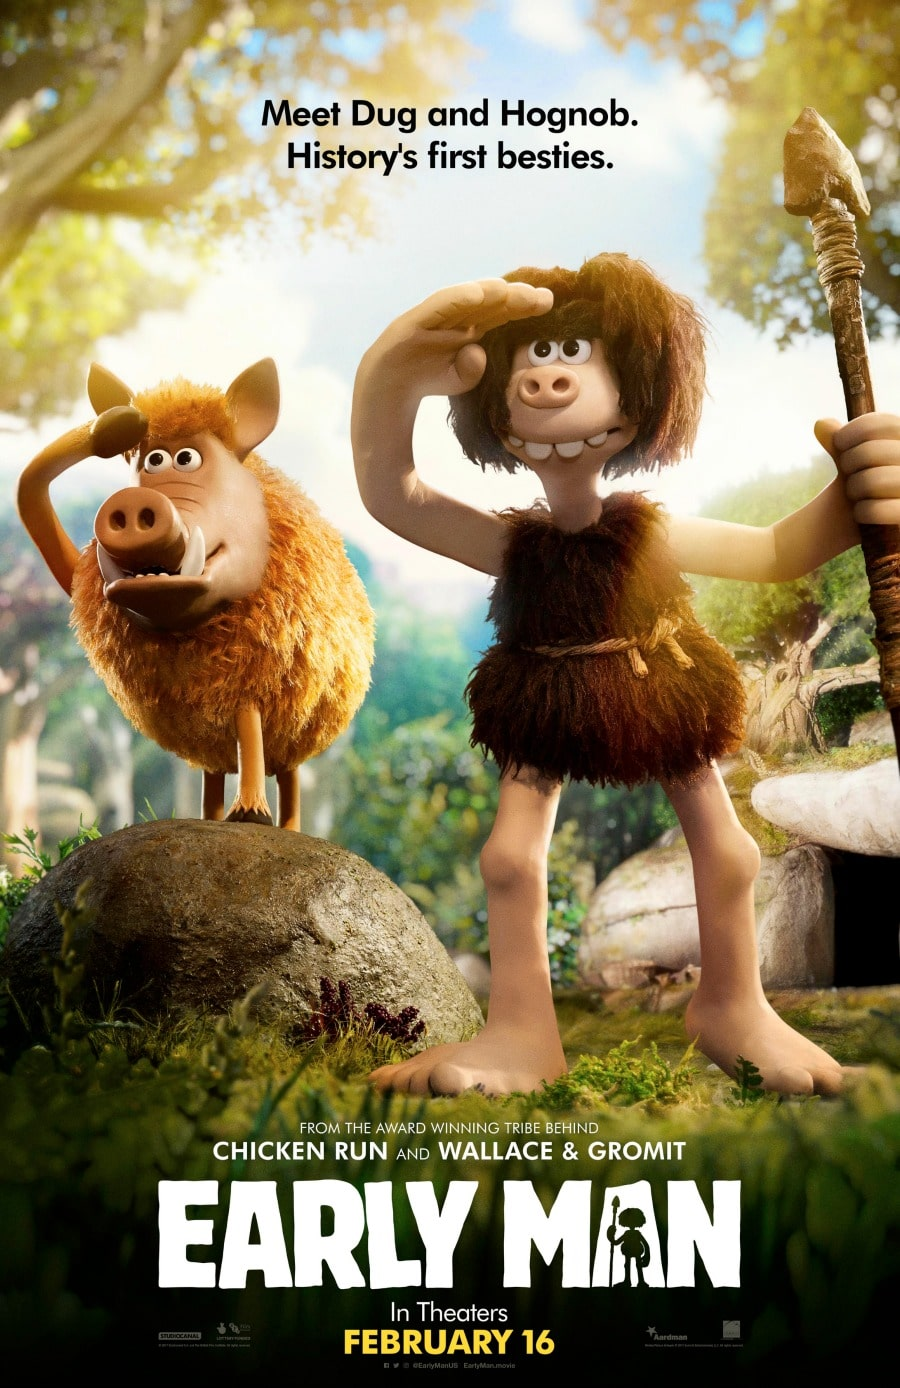 Go See the Early Man Movie February 16th